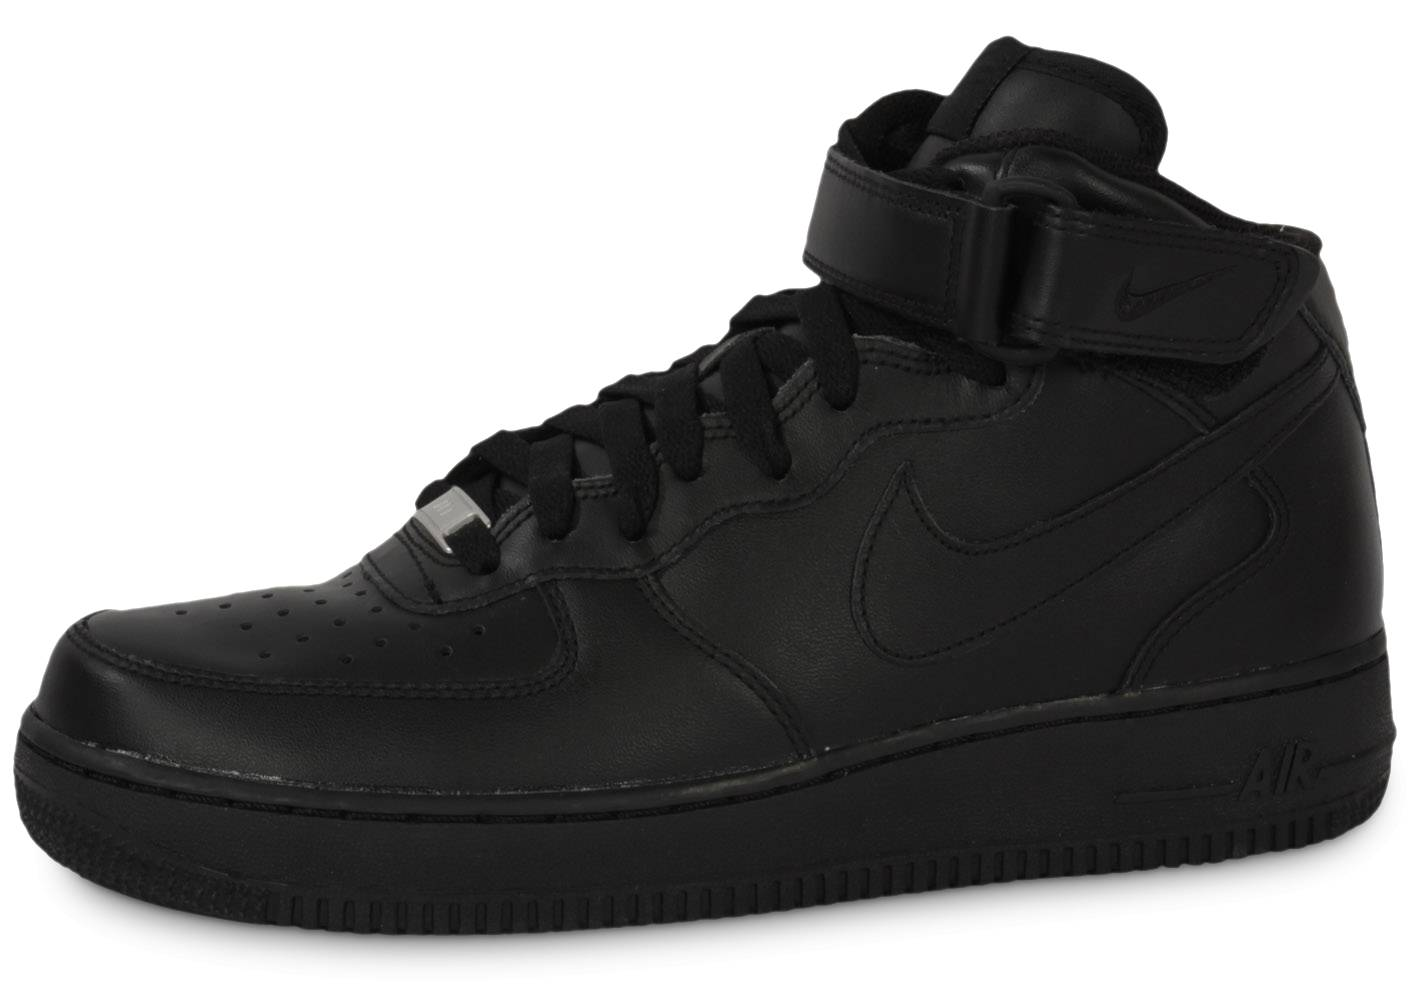 Nike Homme Air Force 1 Mid 07 Noire Baskets 43